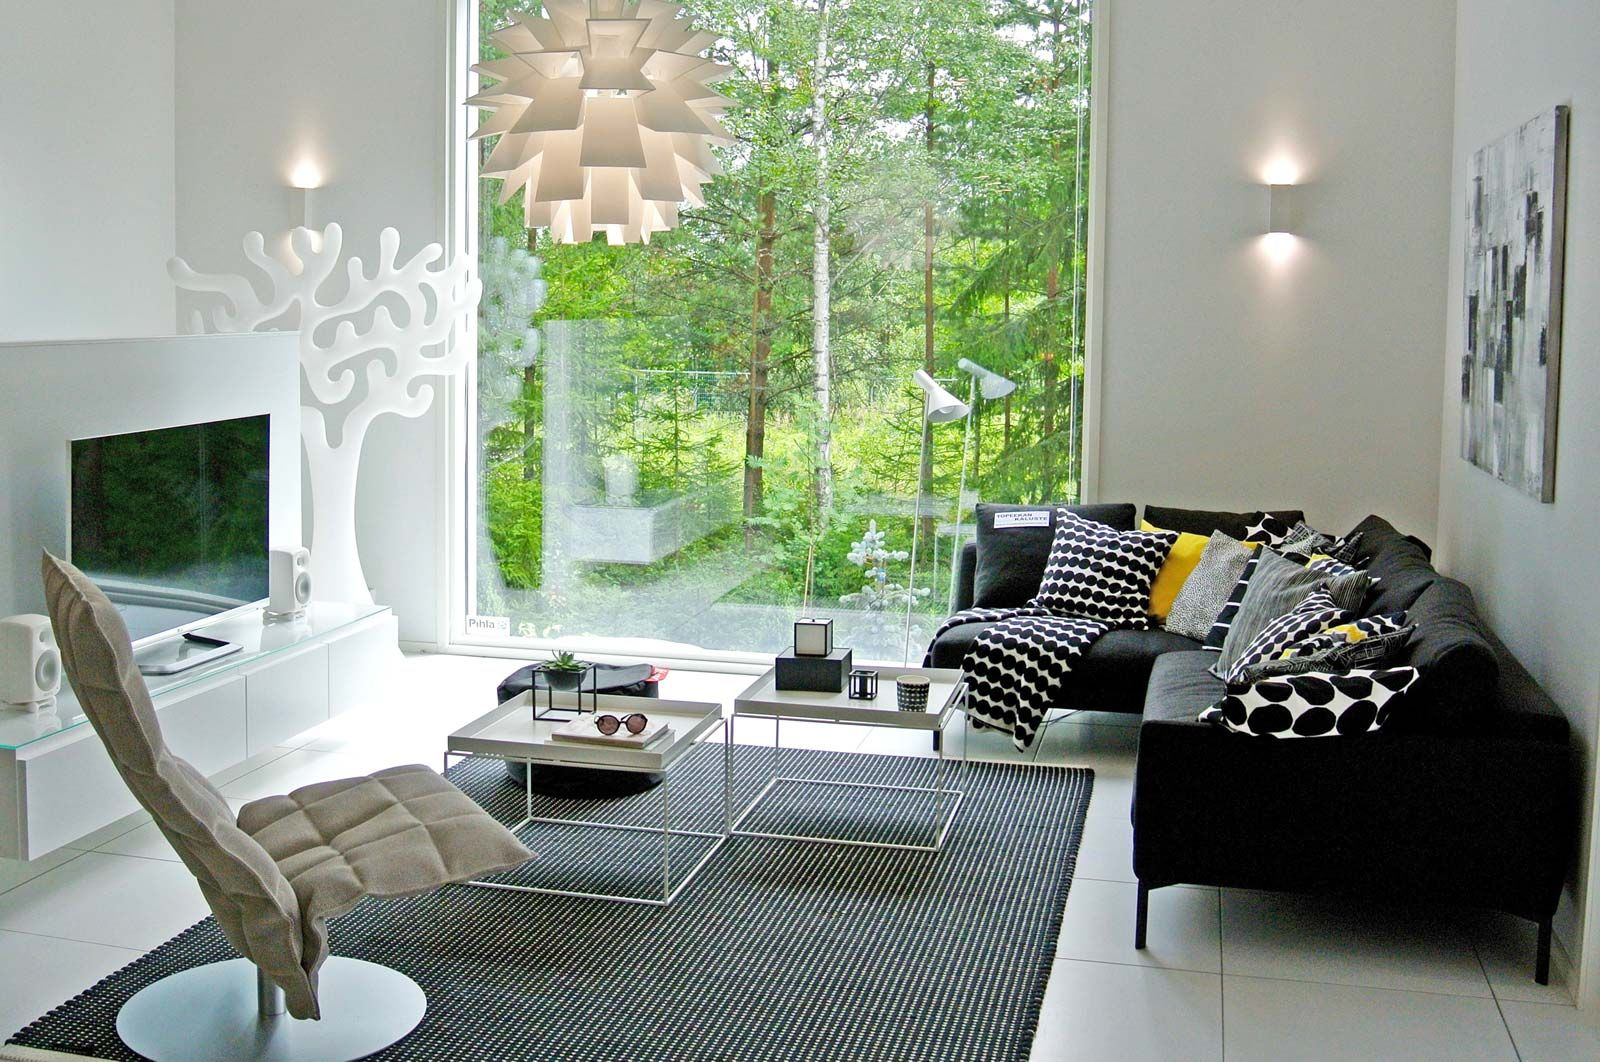 making a small room look bigger needs you to trick the eye here are 15 simple ideas for small rooms to make the room look bigger - Ideas To Make A Small Room Look Bigger